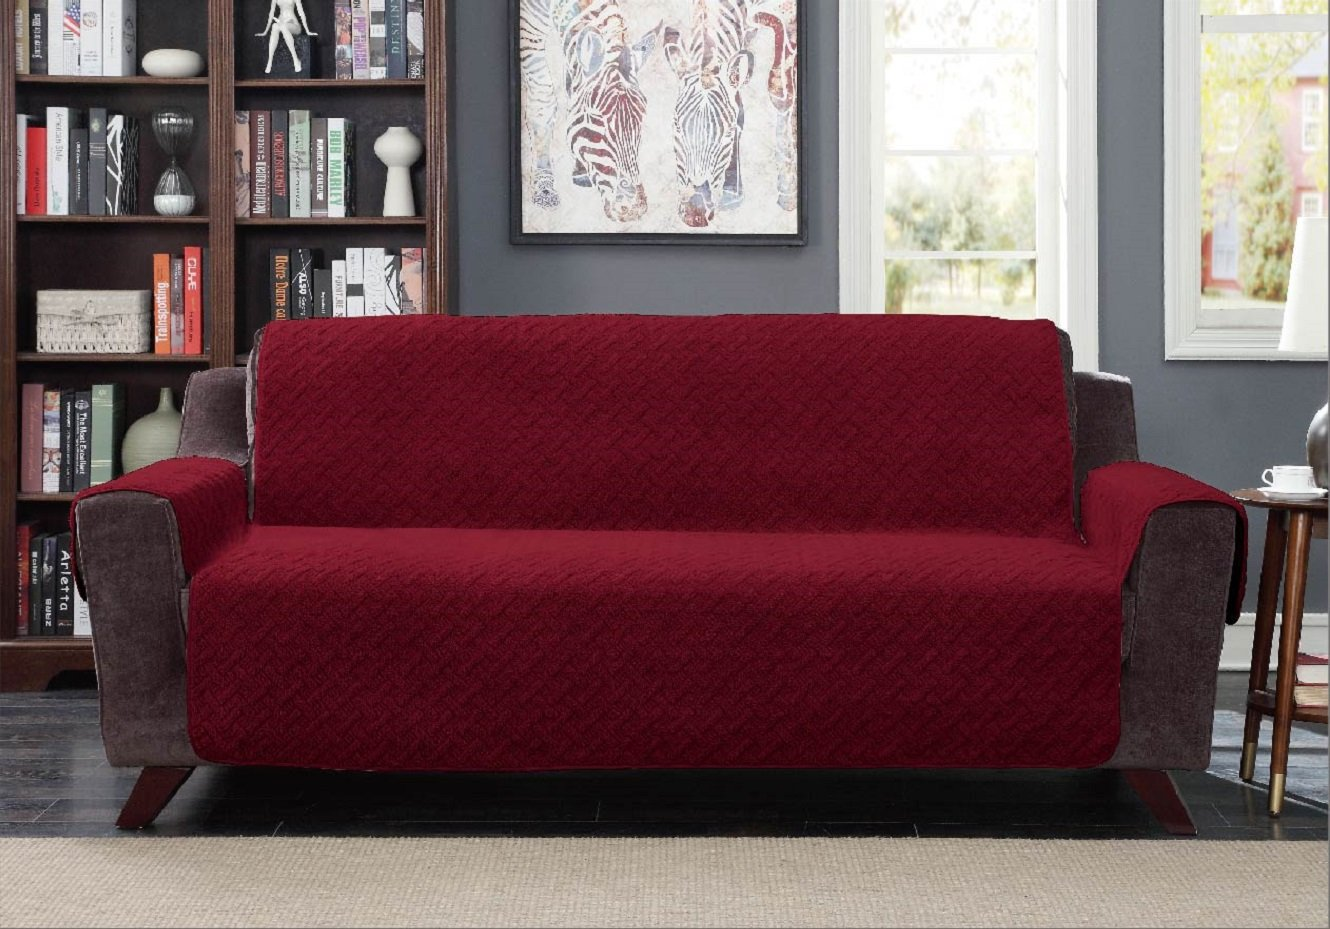 "American Home Reversible Sherpa Furniture Protector Cover with Removable Elastic Strap - Protection from Soils, Spills, Stains and Pets - Solid Sherpa (Sofa (112"" x 70""), Burgundy) by American Home"